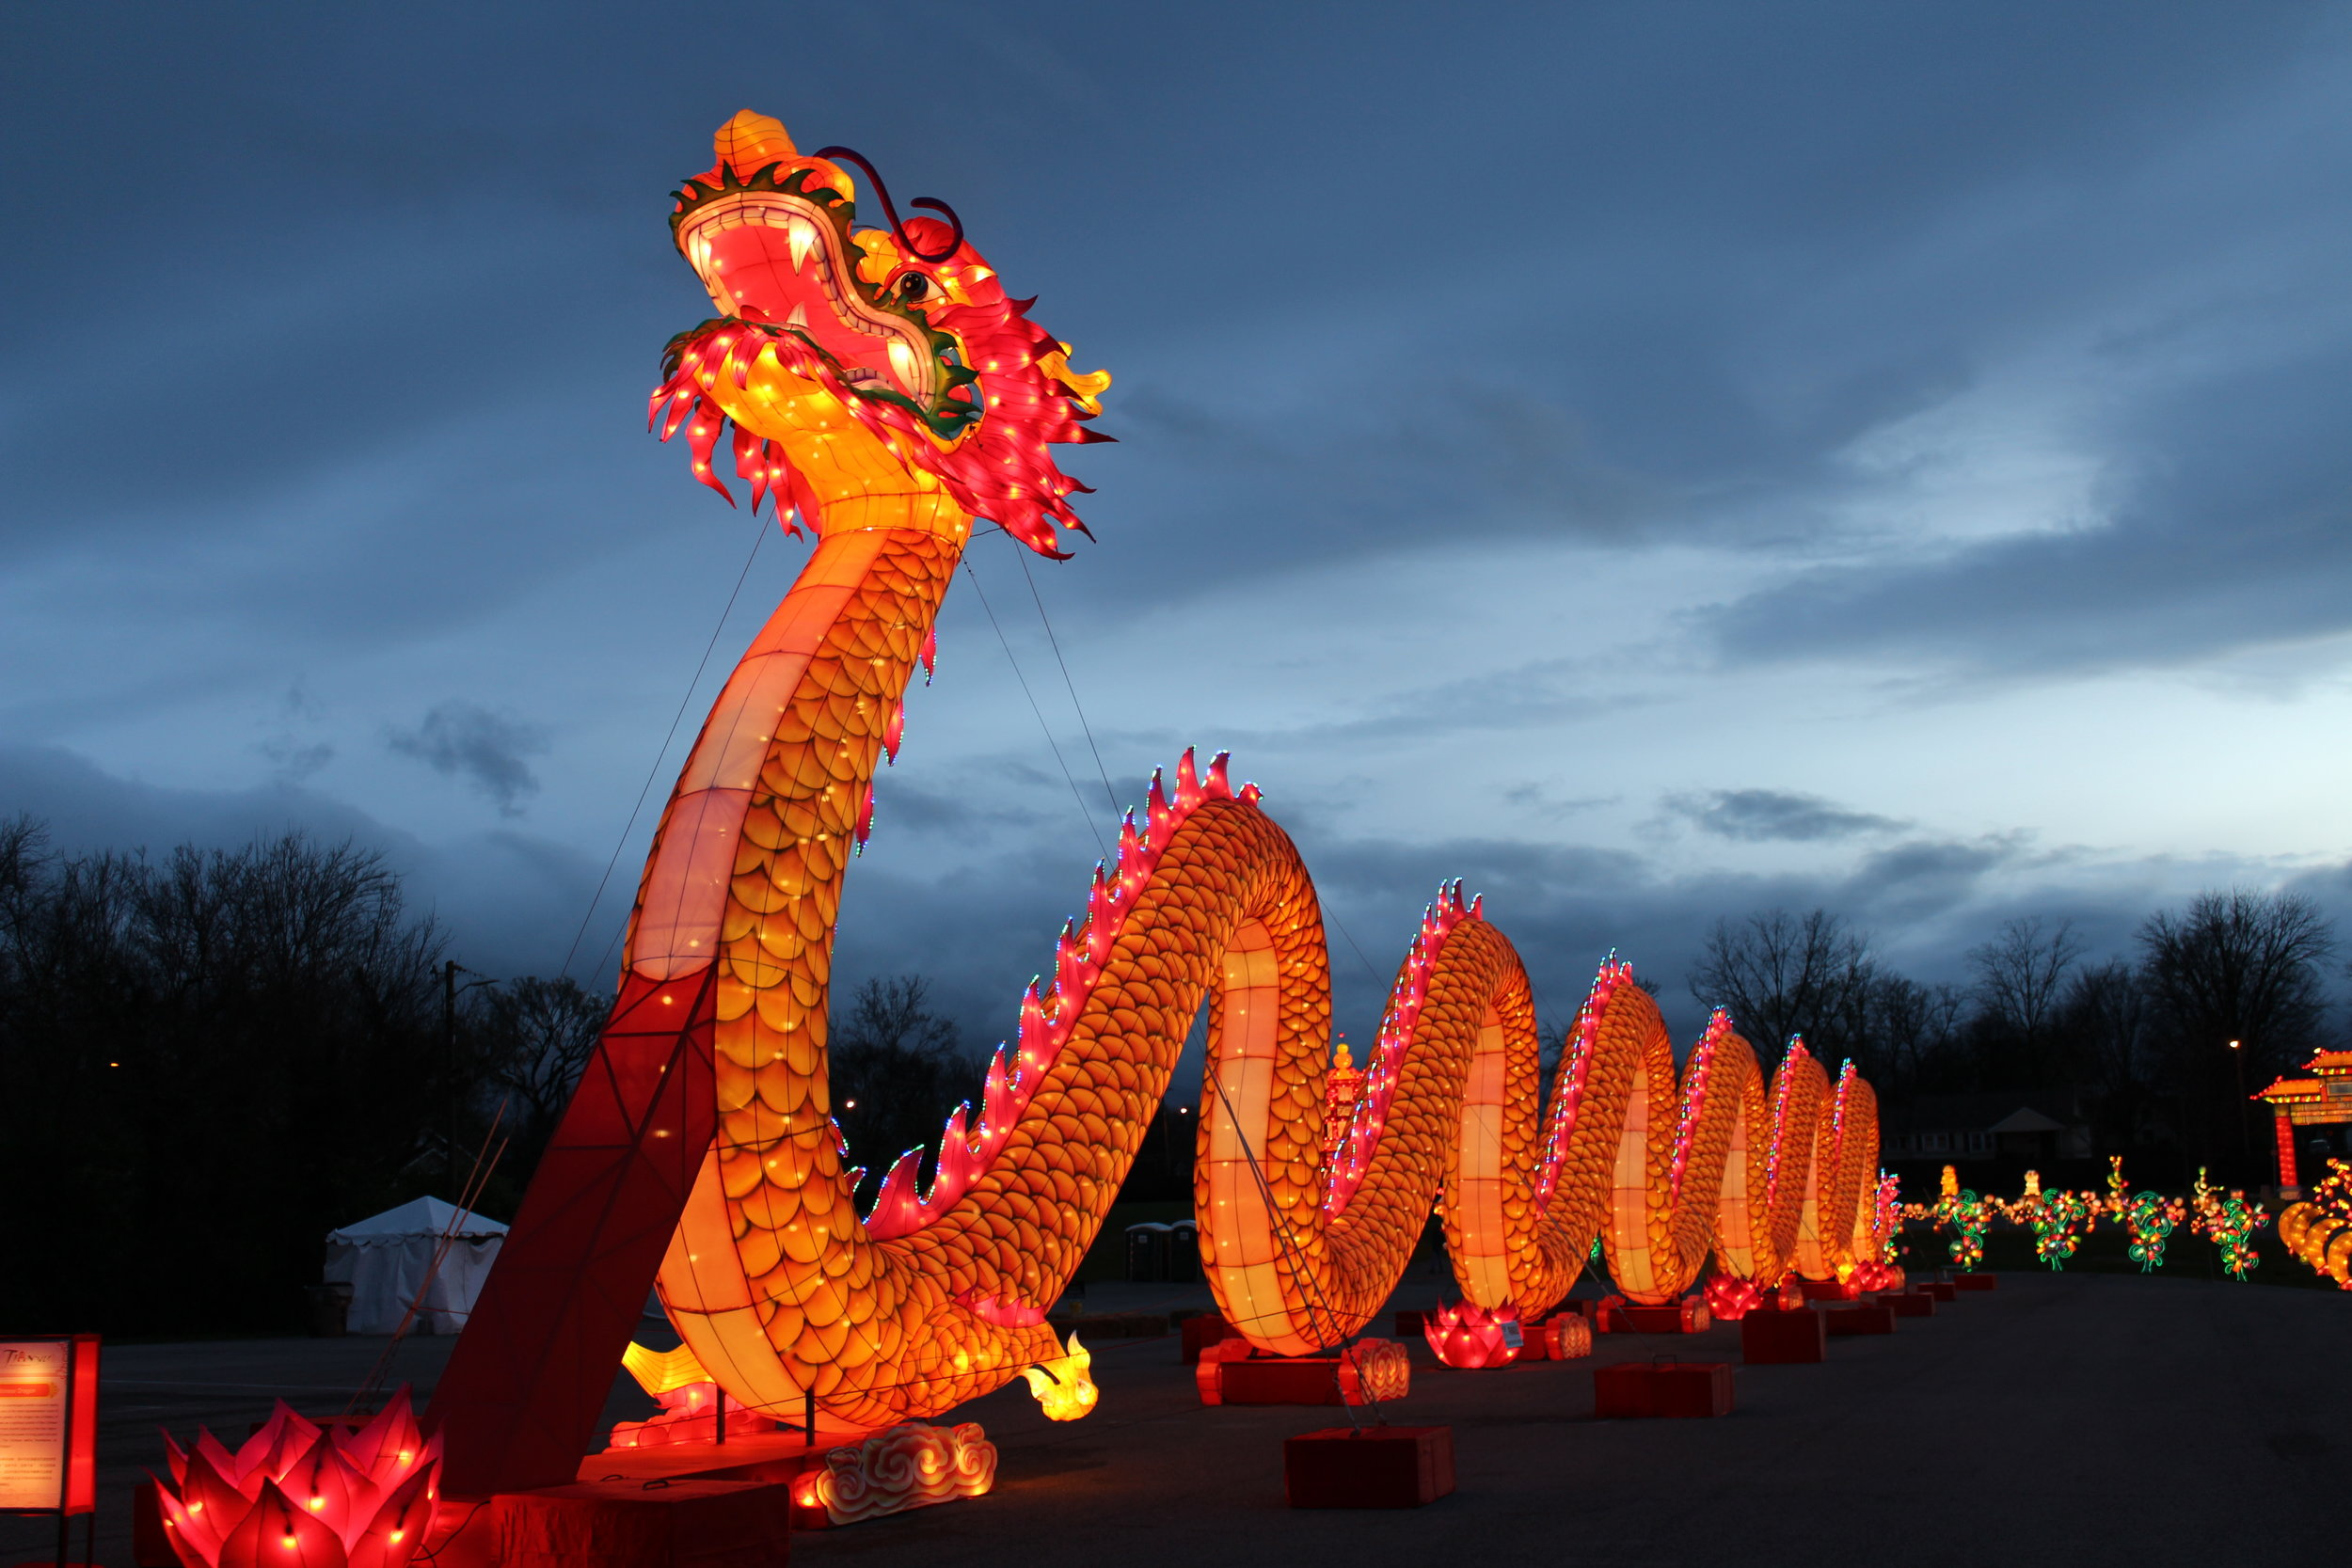 This dragon is the centerpiece of the festival, stretching hundreds of feet long. The dragon is a ancient symbol of good luck in Chinese culture.